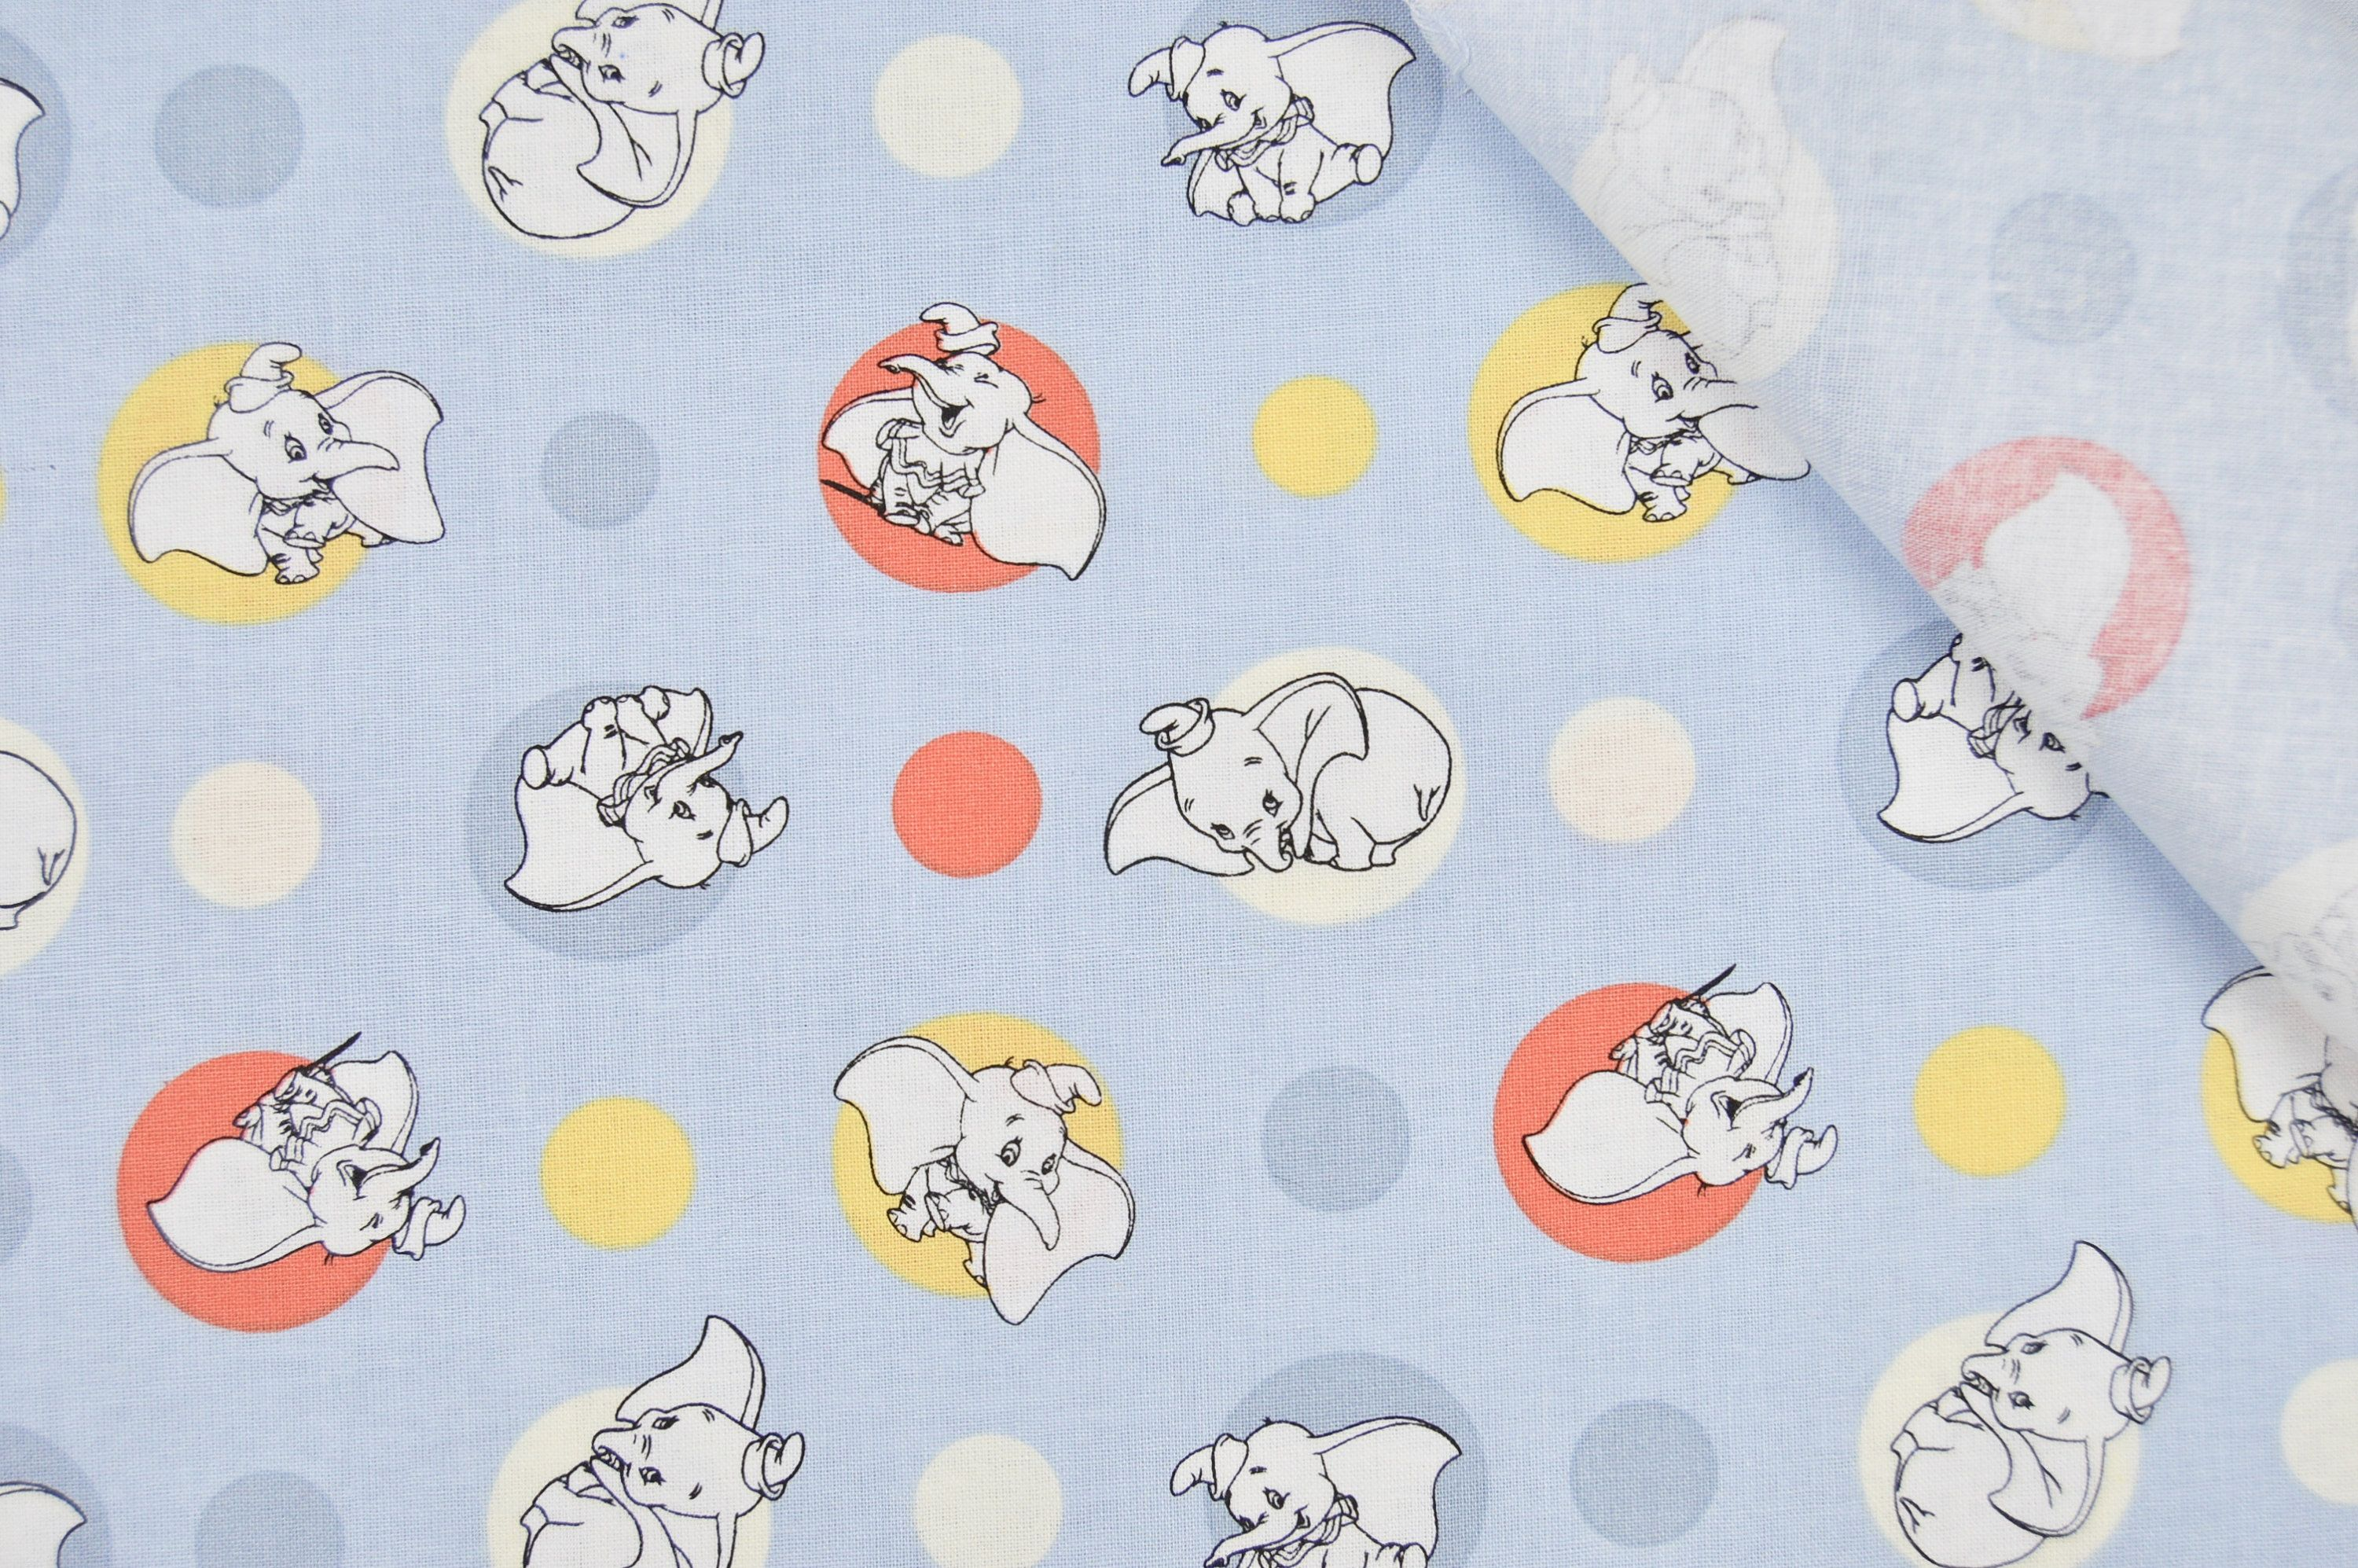 1eab8561bd1 NEW Disney Dumbo Fabric, Springs Creative Fabrics, Polka Dots Cotton  Material, Design CP66397